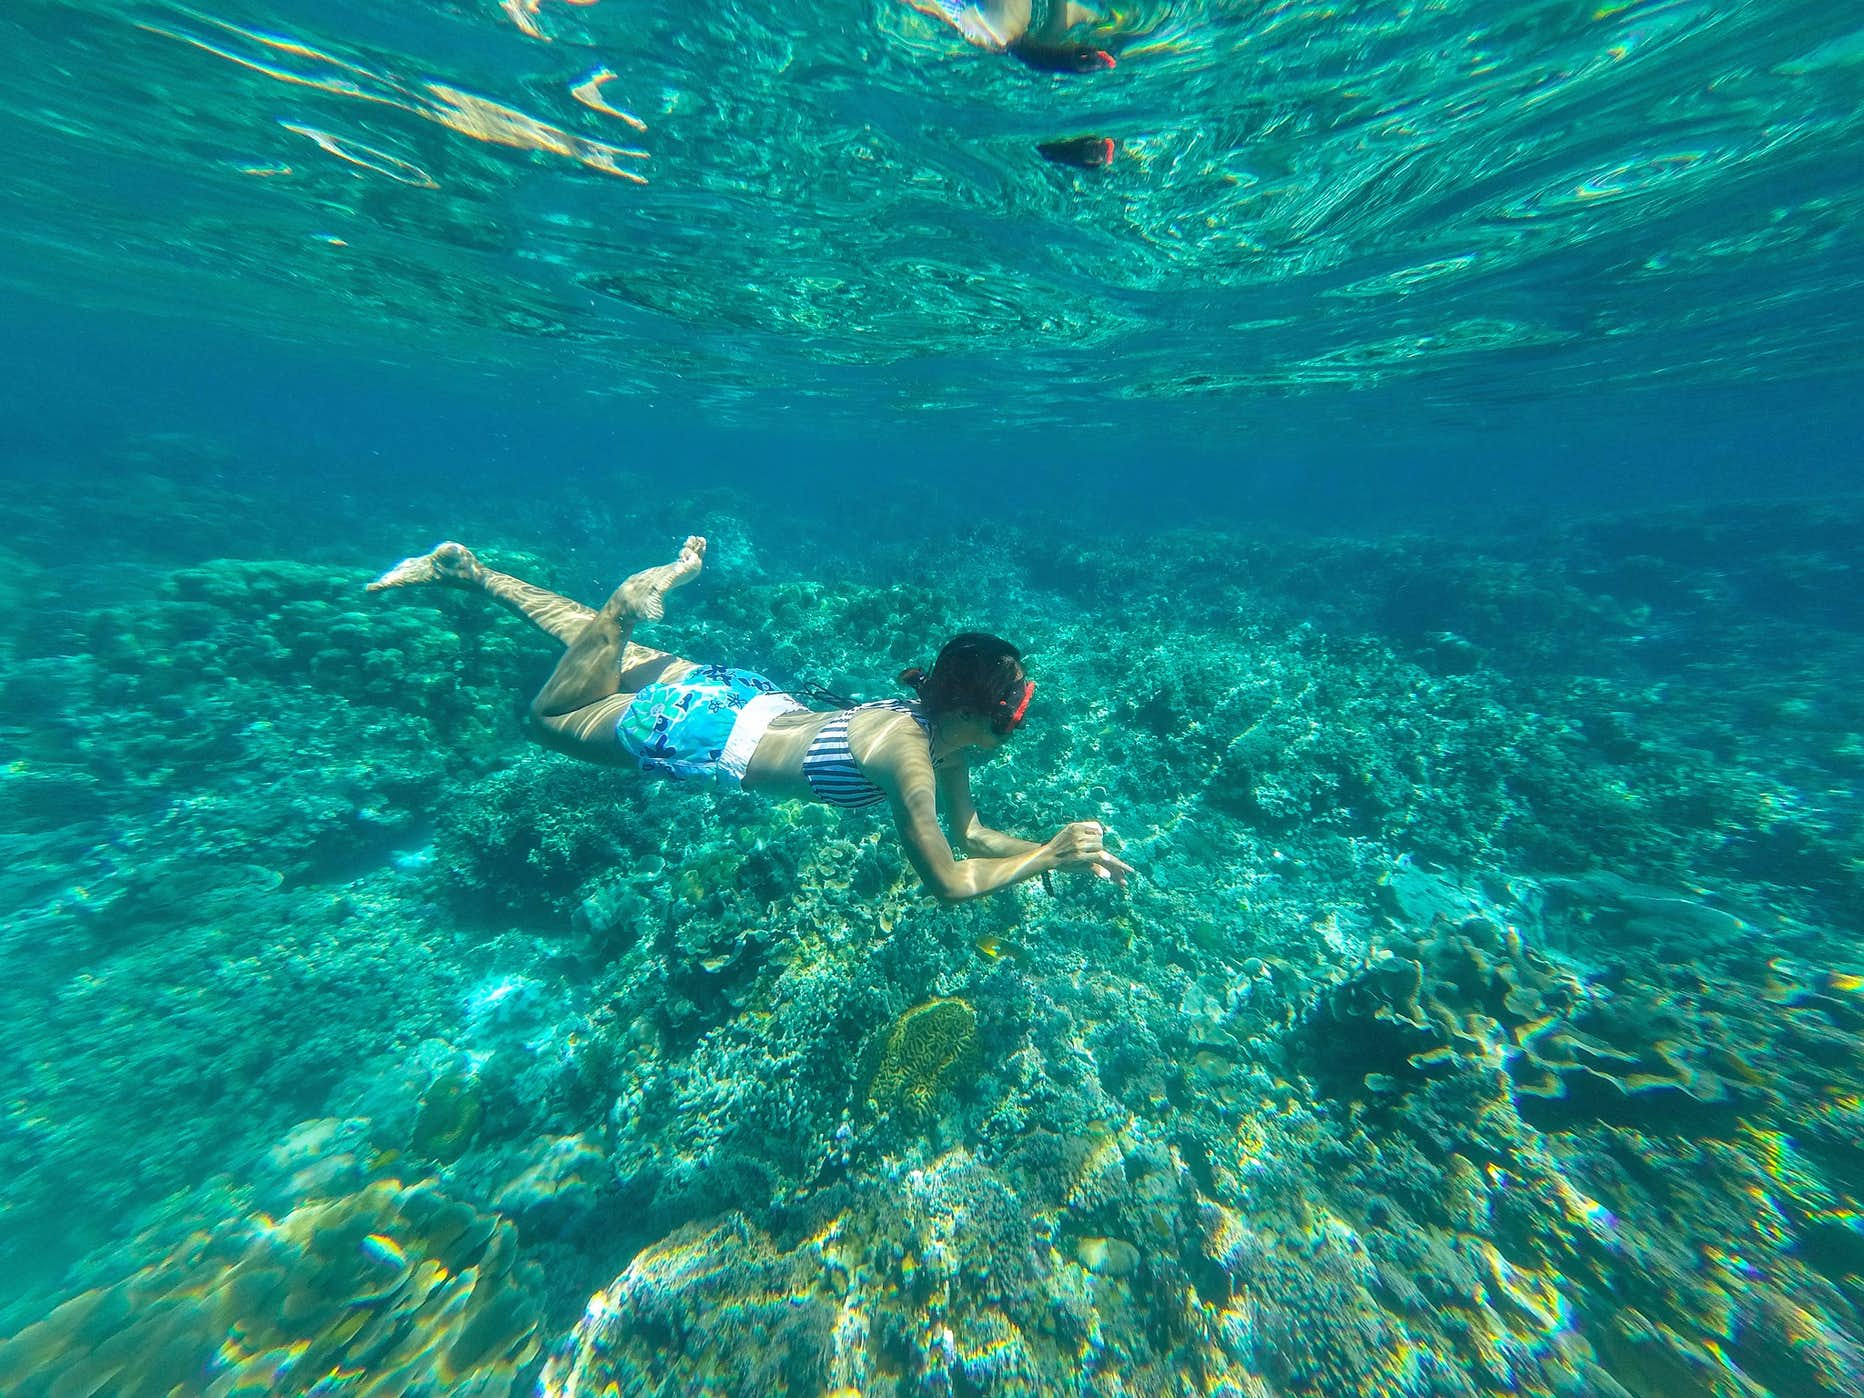 A girl snorkelling in Coral Garden in Davao